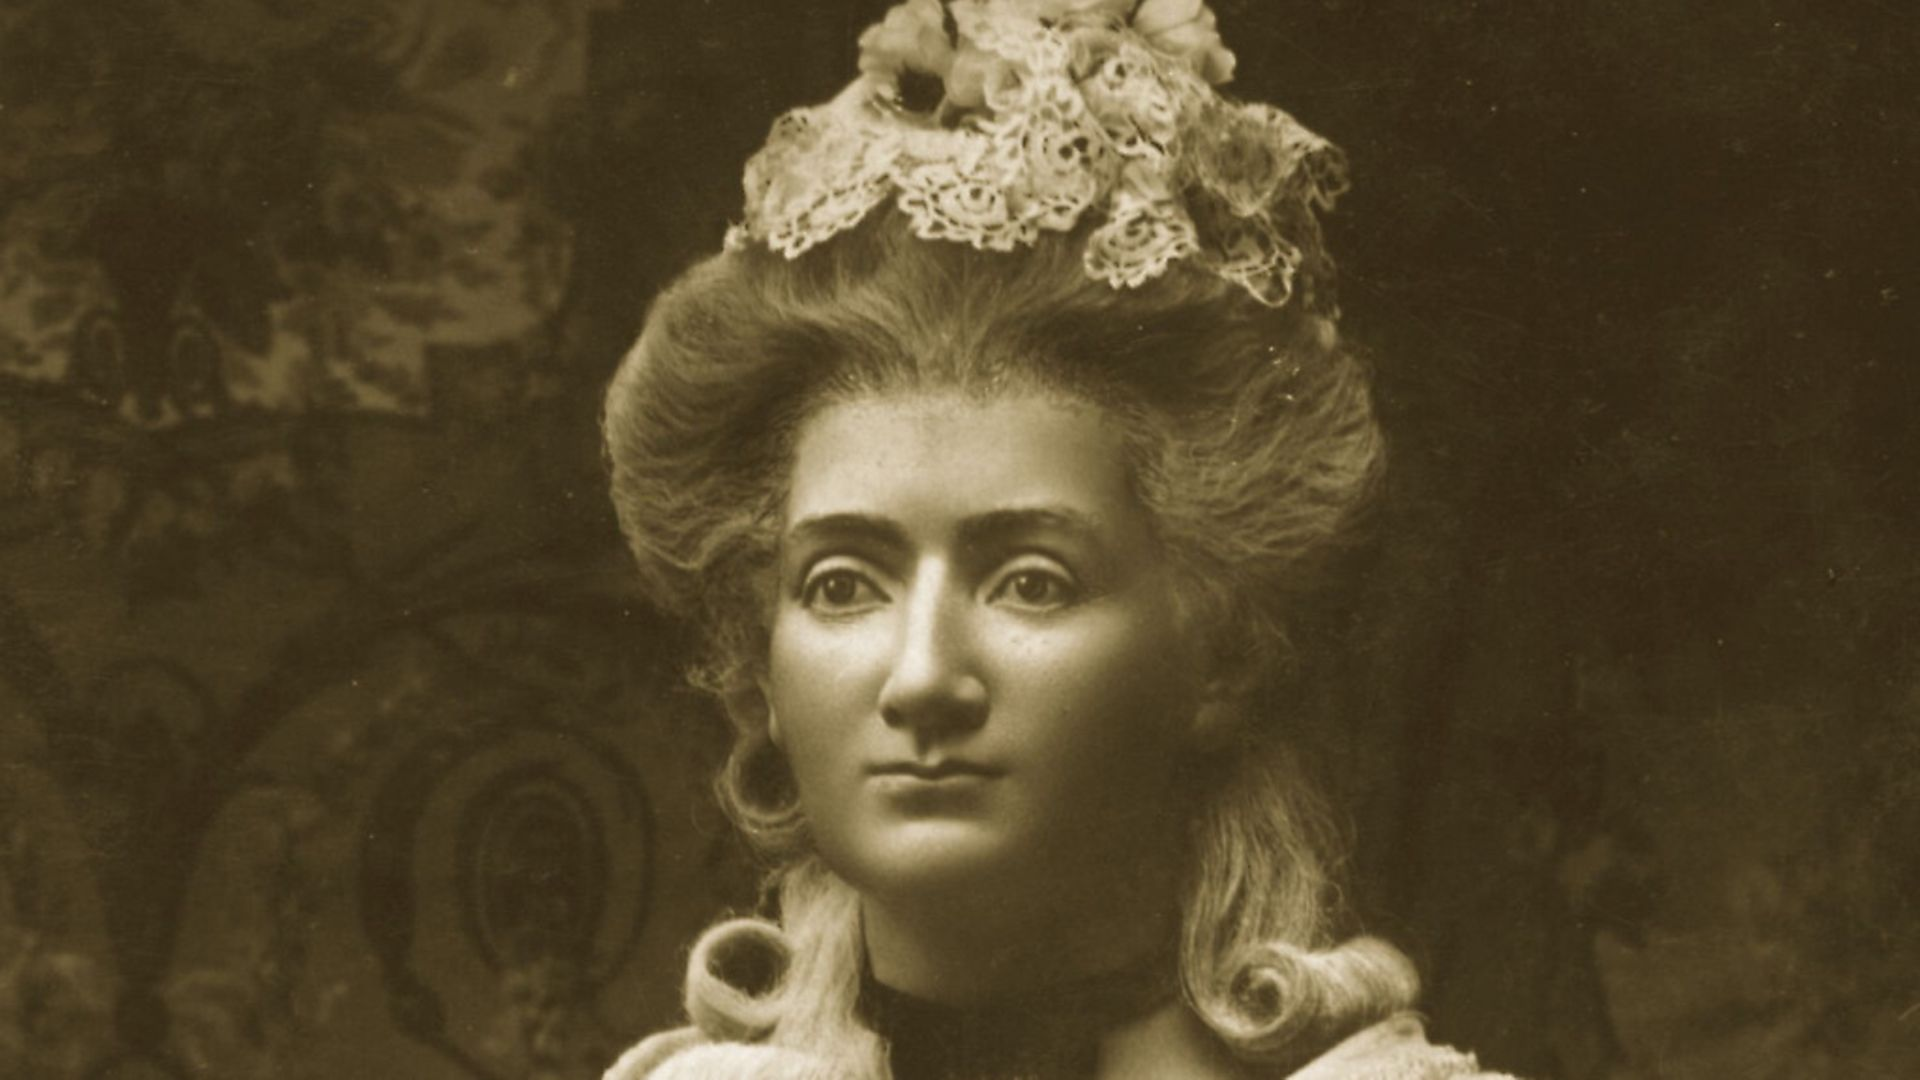 A waxwork of Swiss wax modeller Marie Tussaud (1761 - 1850). In 1835 she set up a permanent exhibition in Baker Street, which was burned down in 1925 and re-opened in Marylebone Road in 1928 as Madame Tussaud's.   Photo: Hulton Archive/Getty Images - Credit: Getty Images